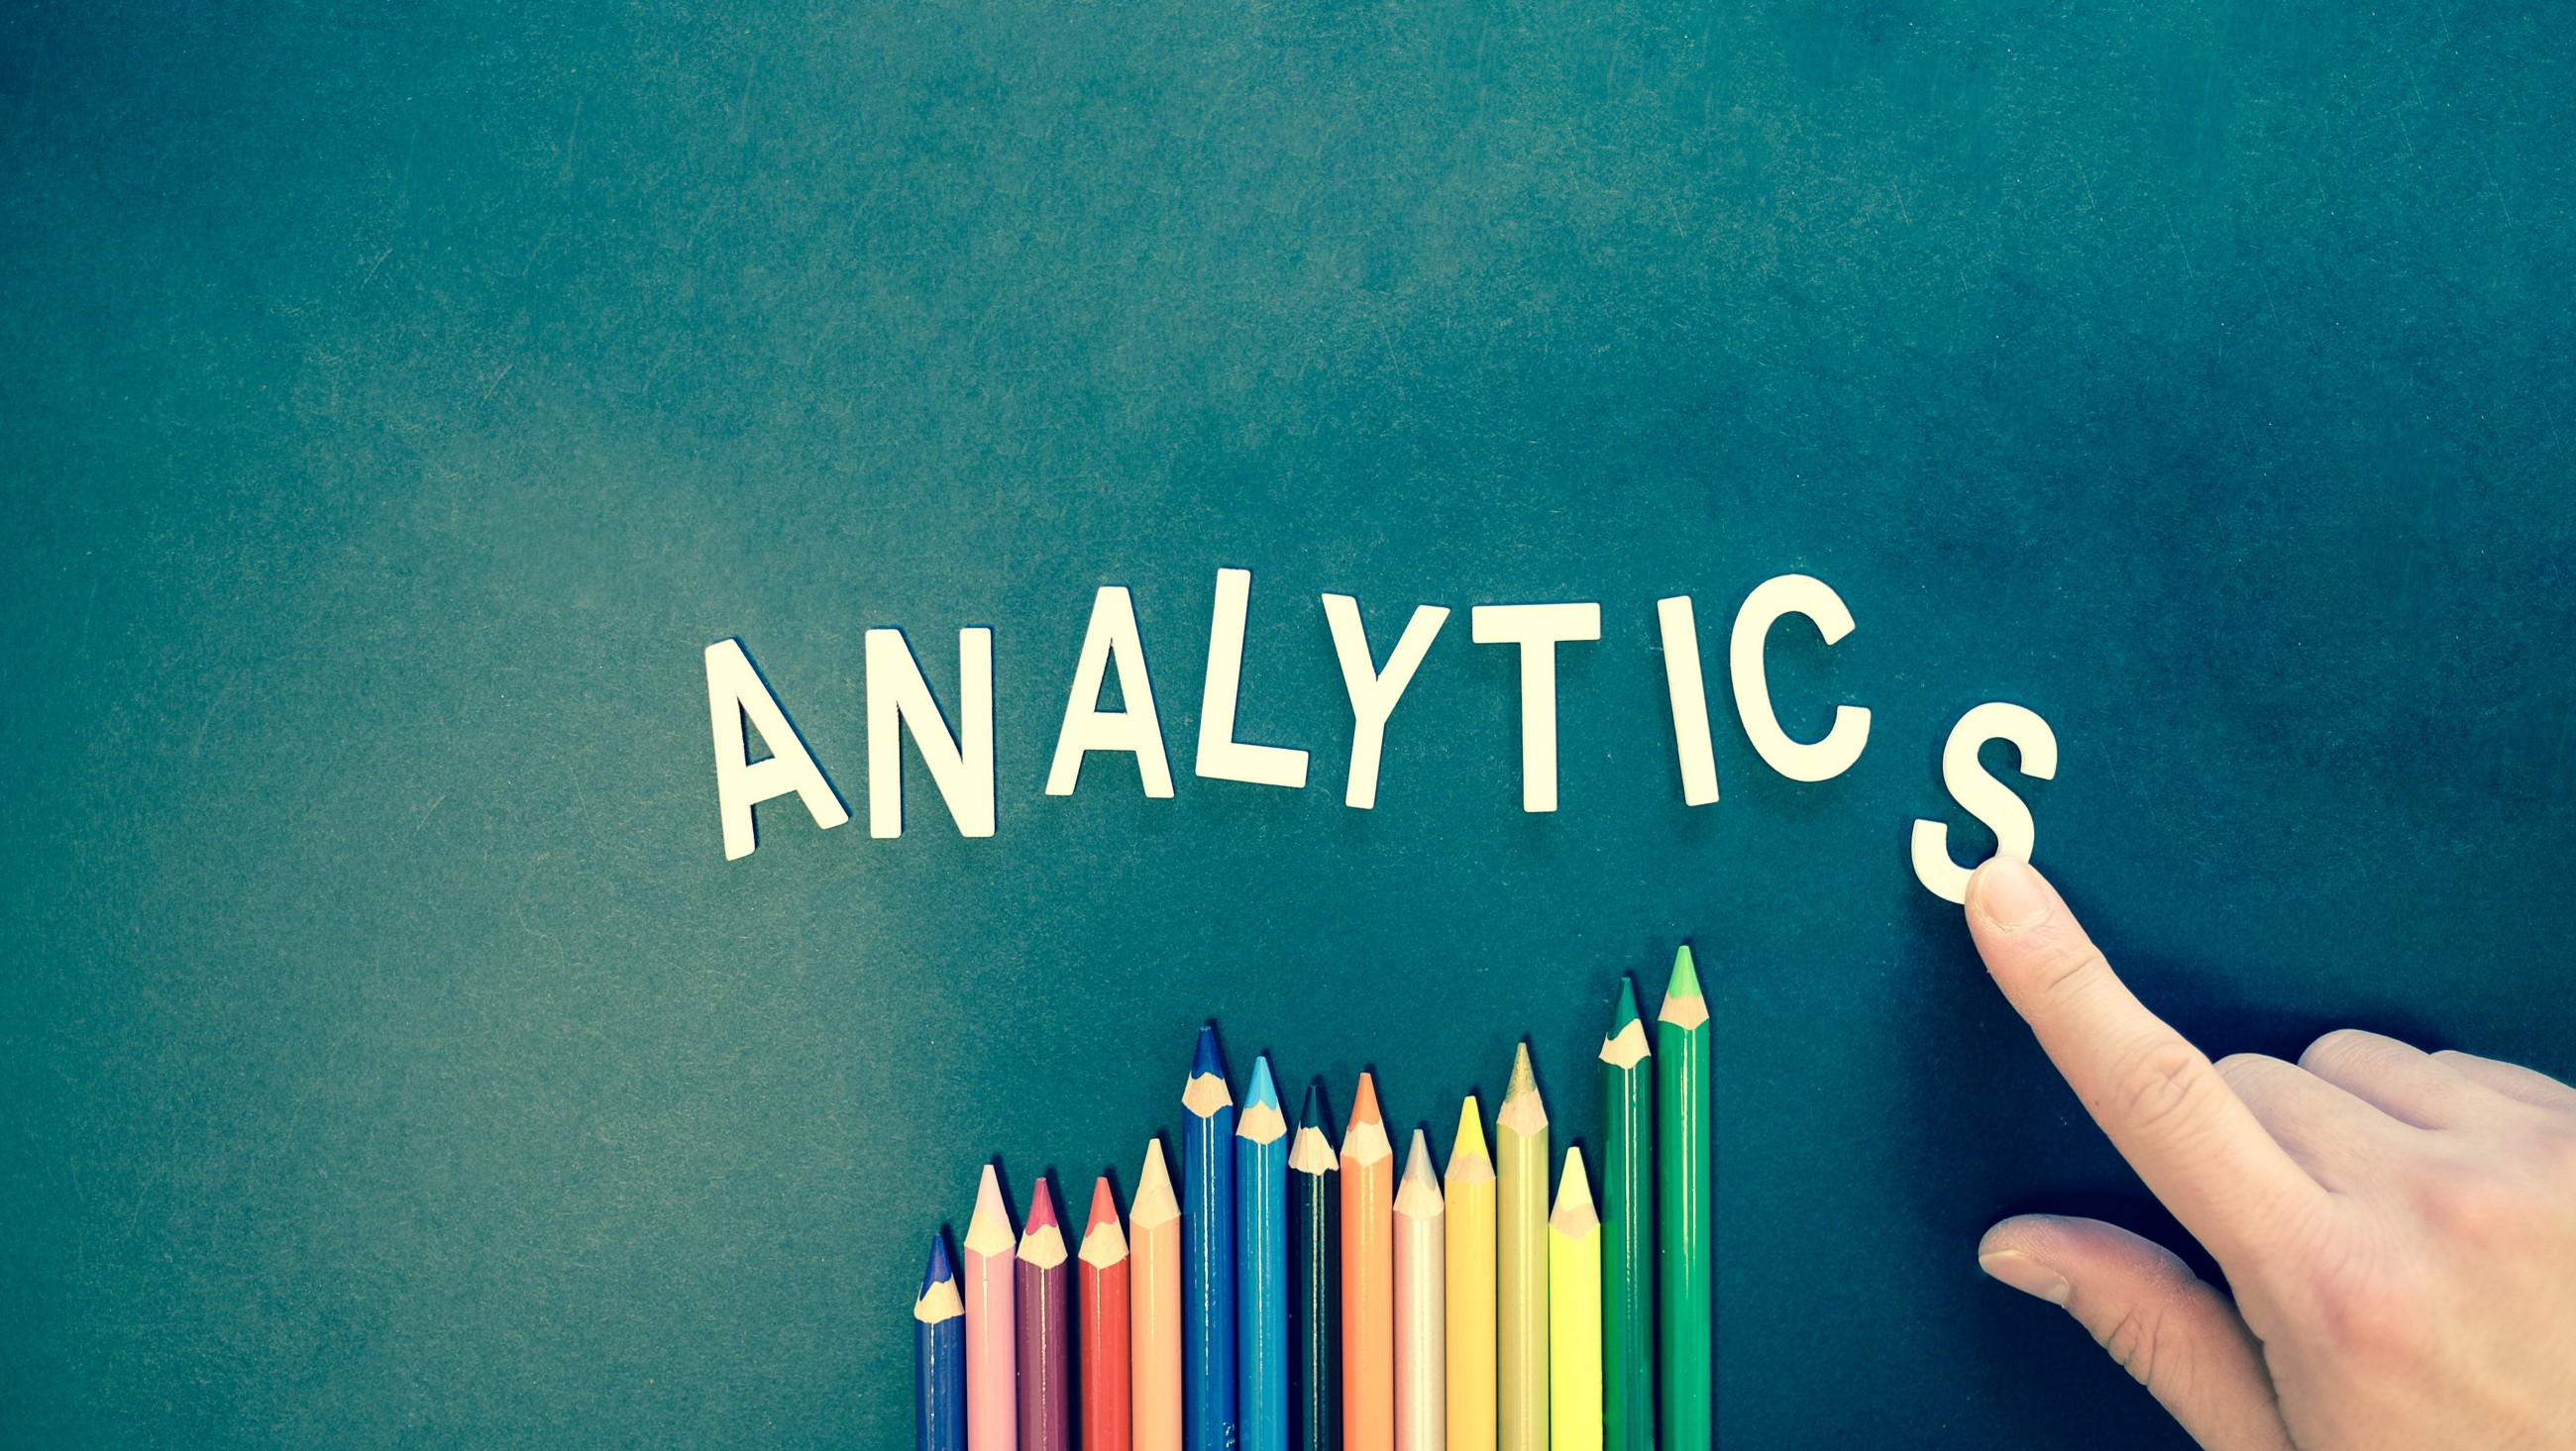 Business Analytics or a Data Science Degree?